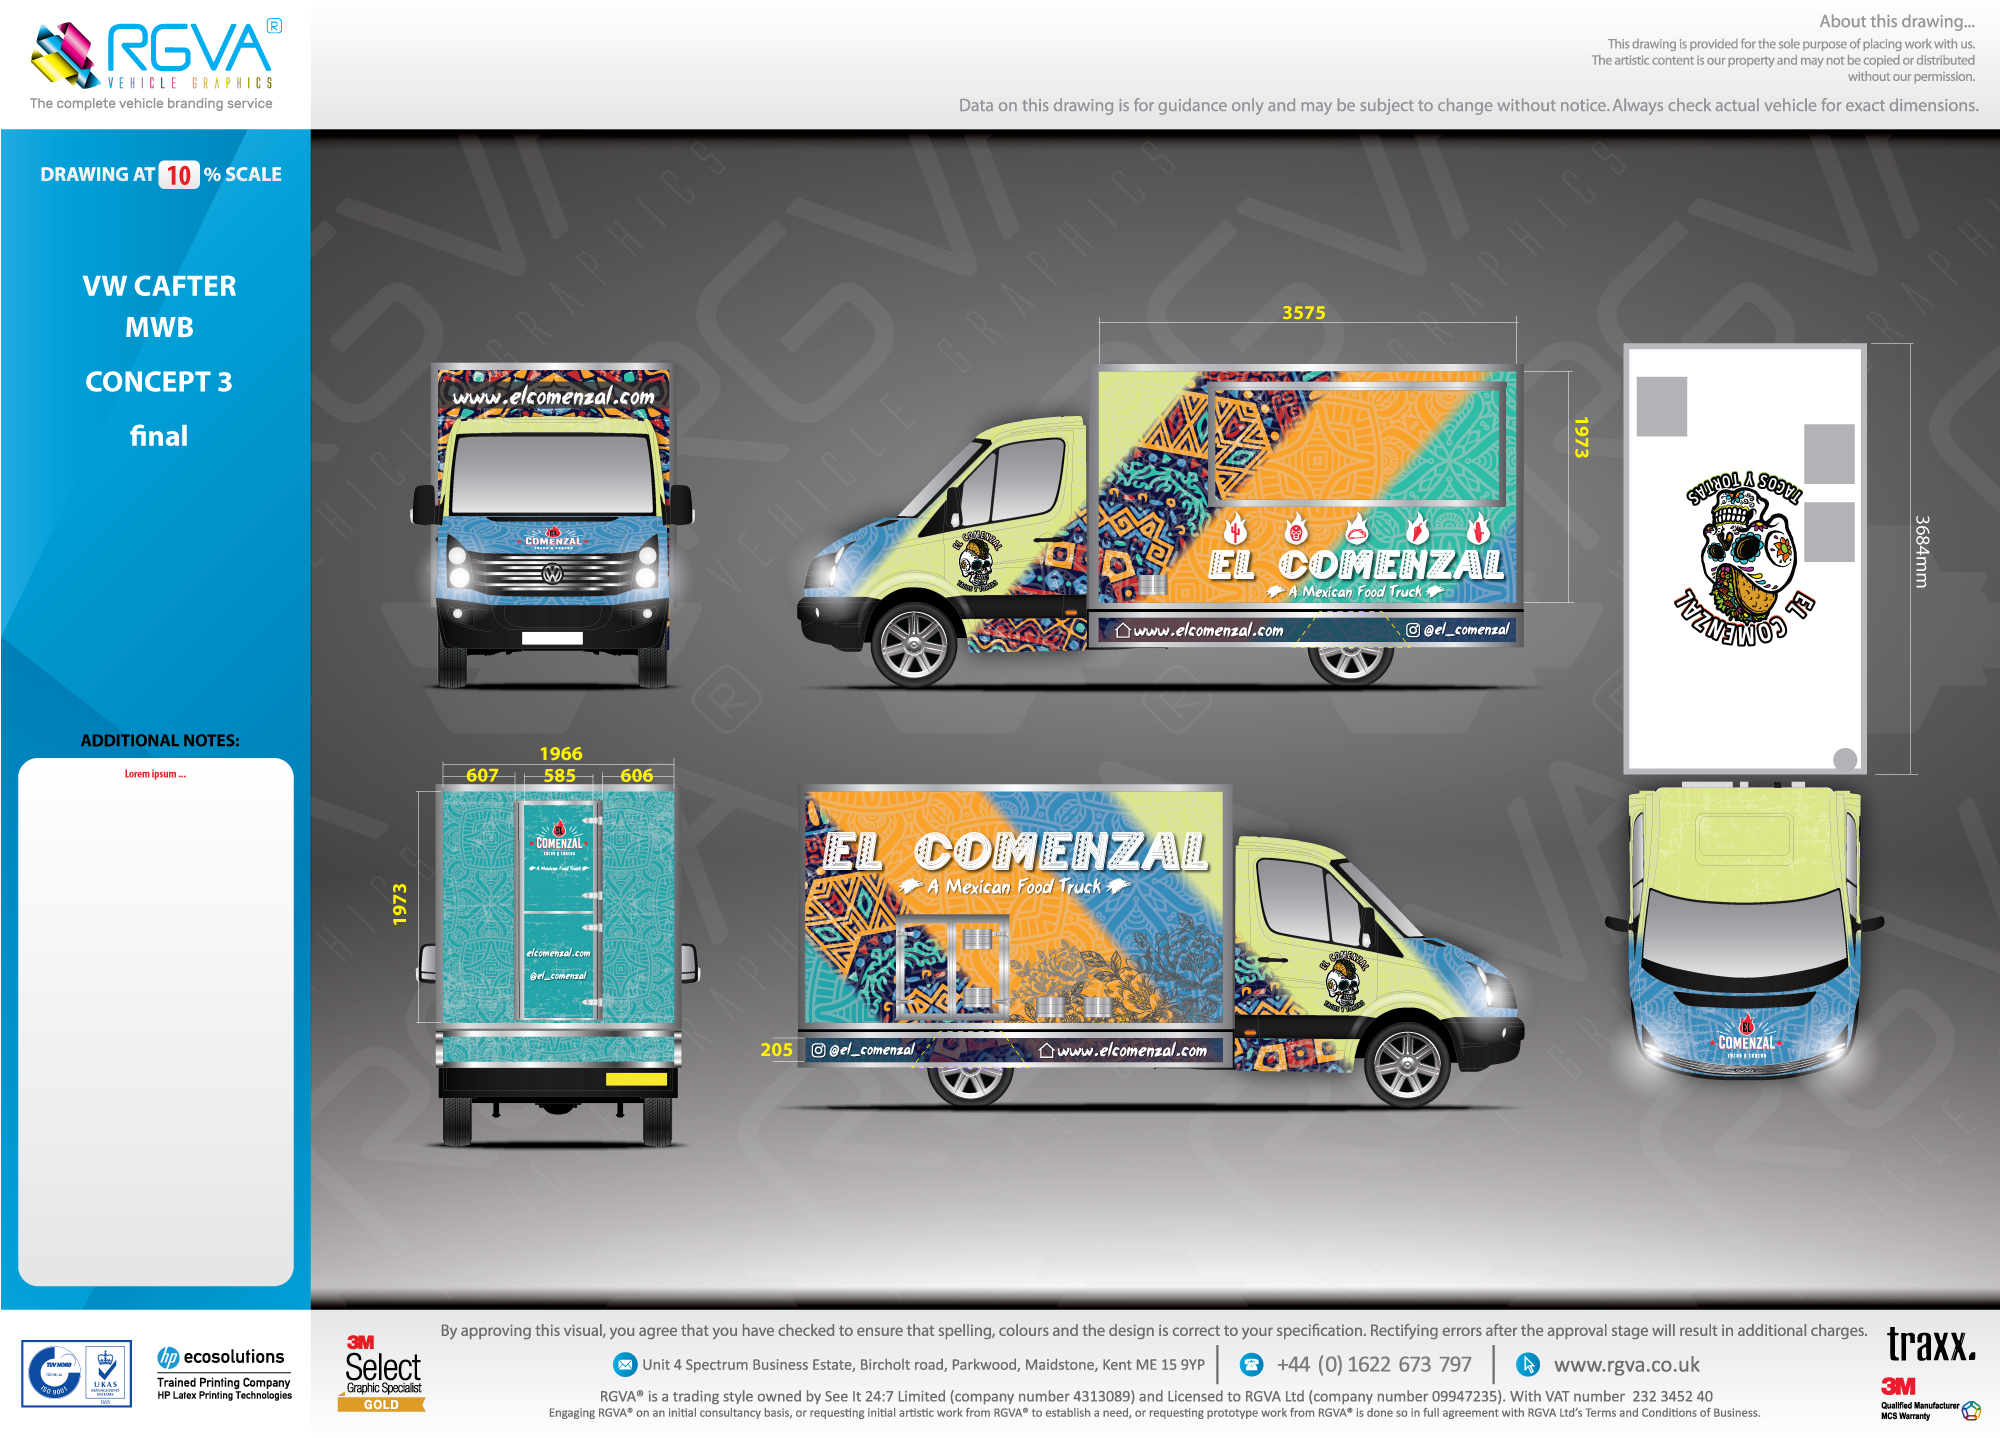 VW-CRAFTER-MWB-2011-17-@10_-SCALE_CONCEPT-3_final-10.04.2018 (1).jpg